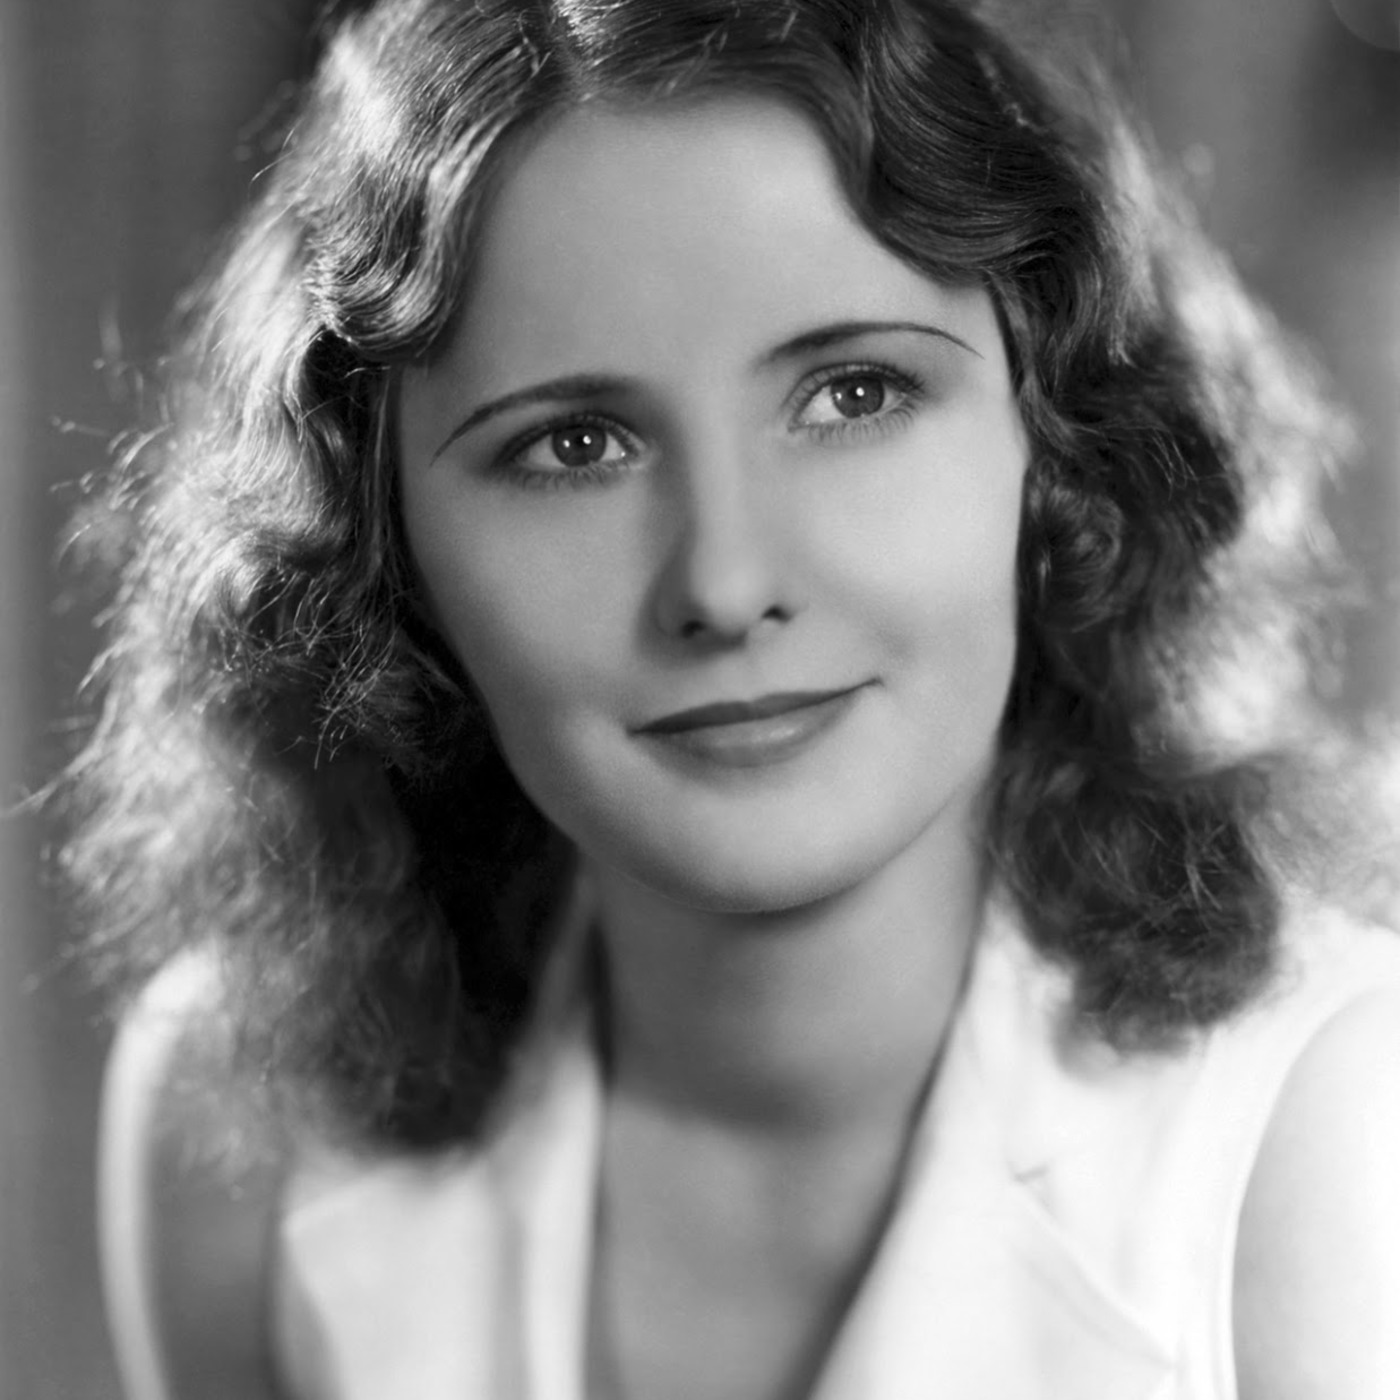 Jack Benny Podcast 1943-11-28 (492) Guest Barbara Stanwyck - Dennis Wants A Raise